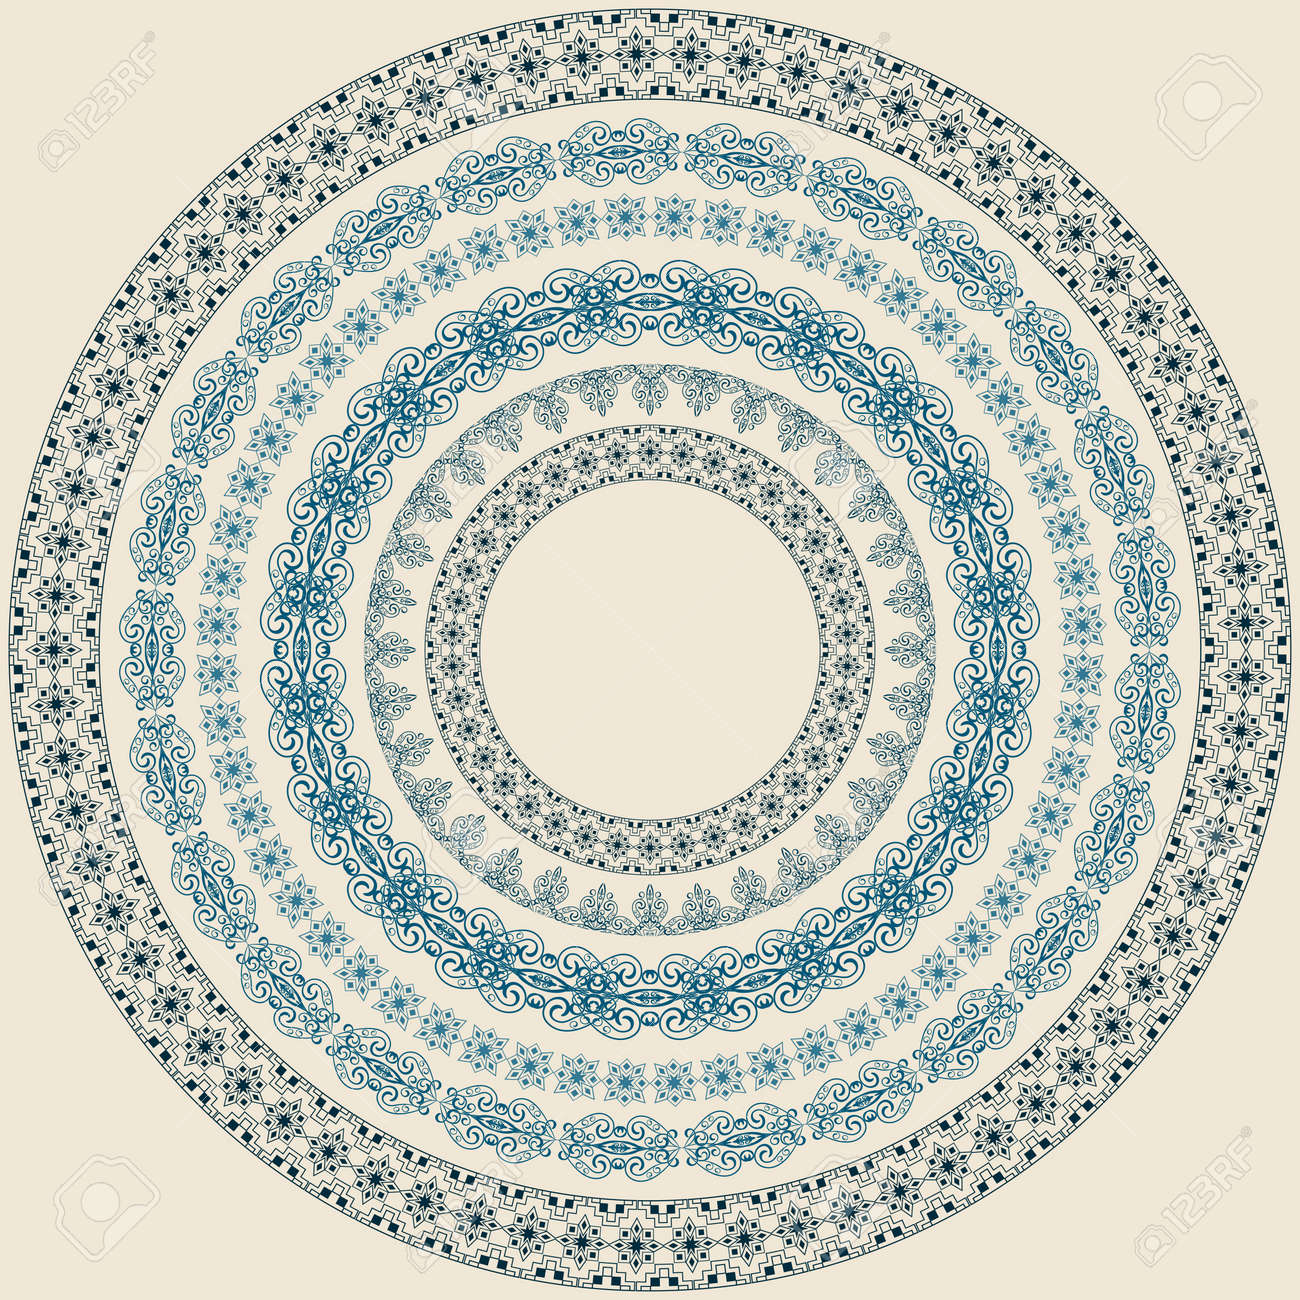 Vintage circle pattern, brushes included Stock Vector - 11496868